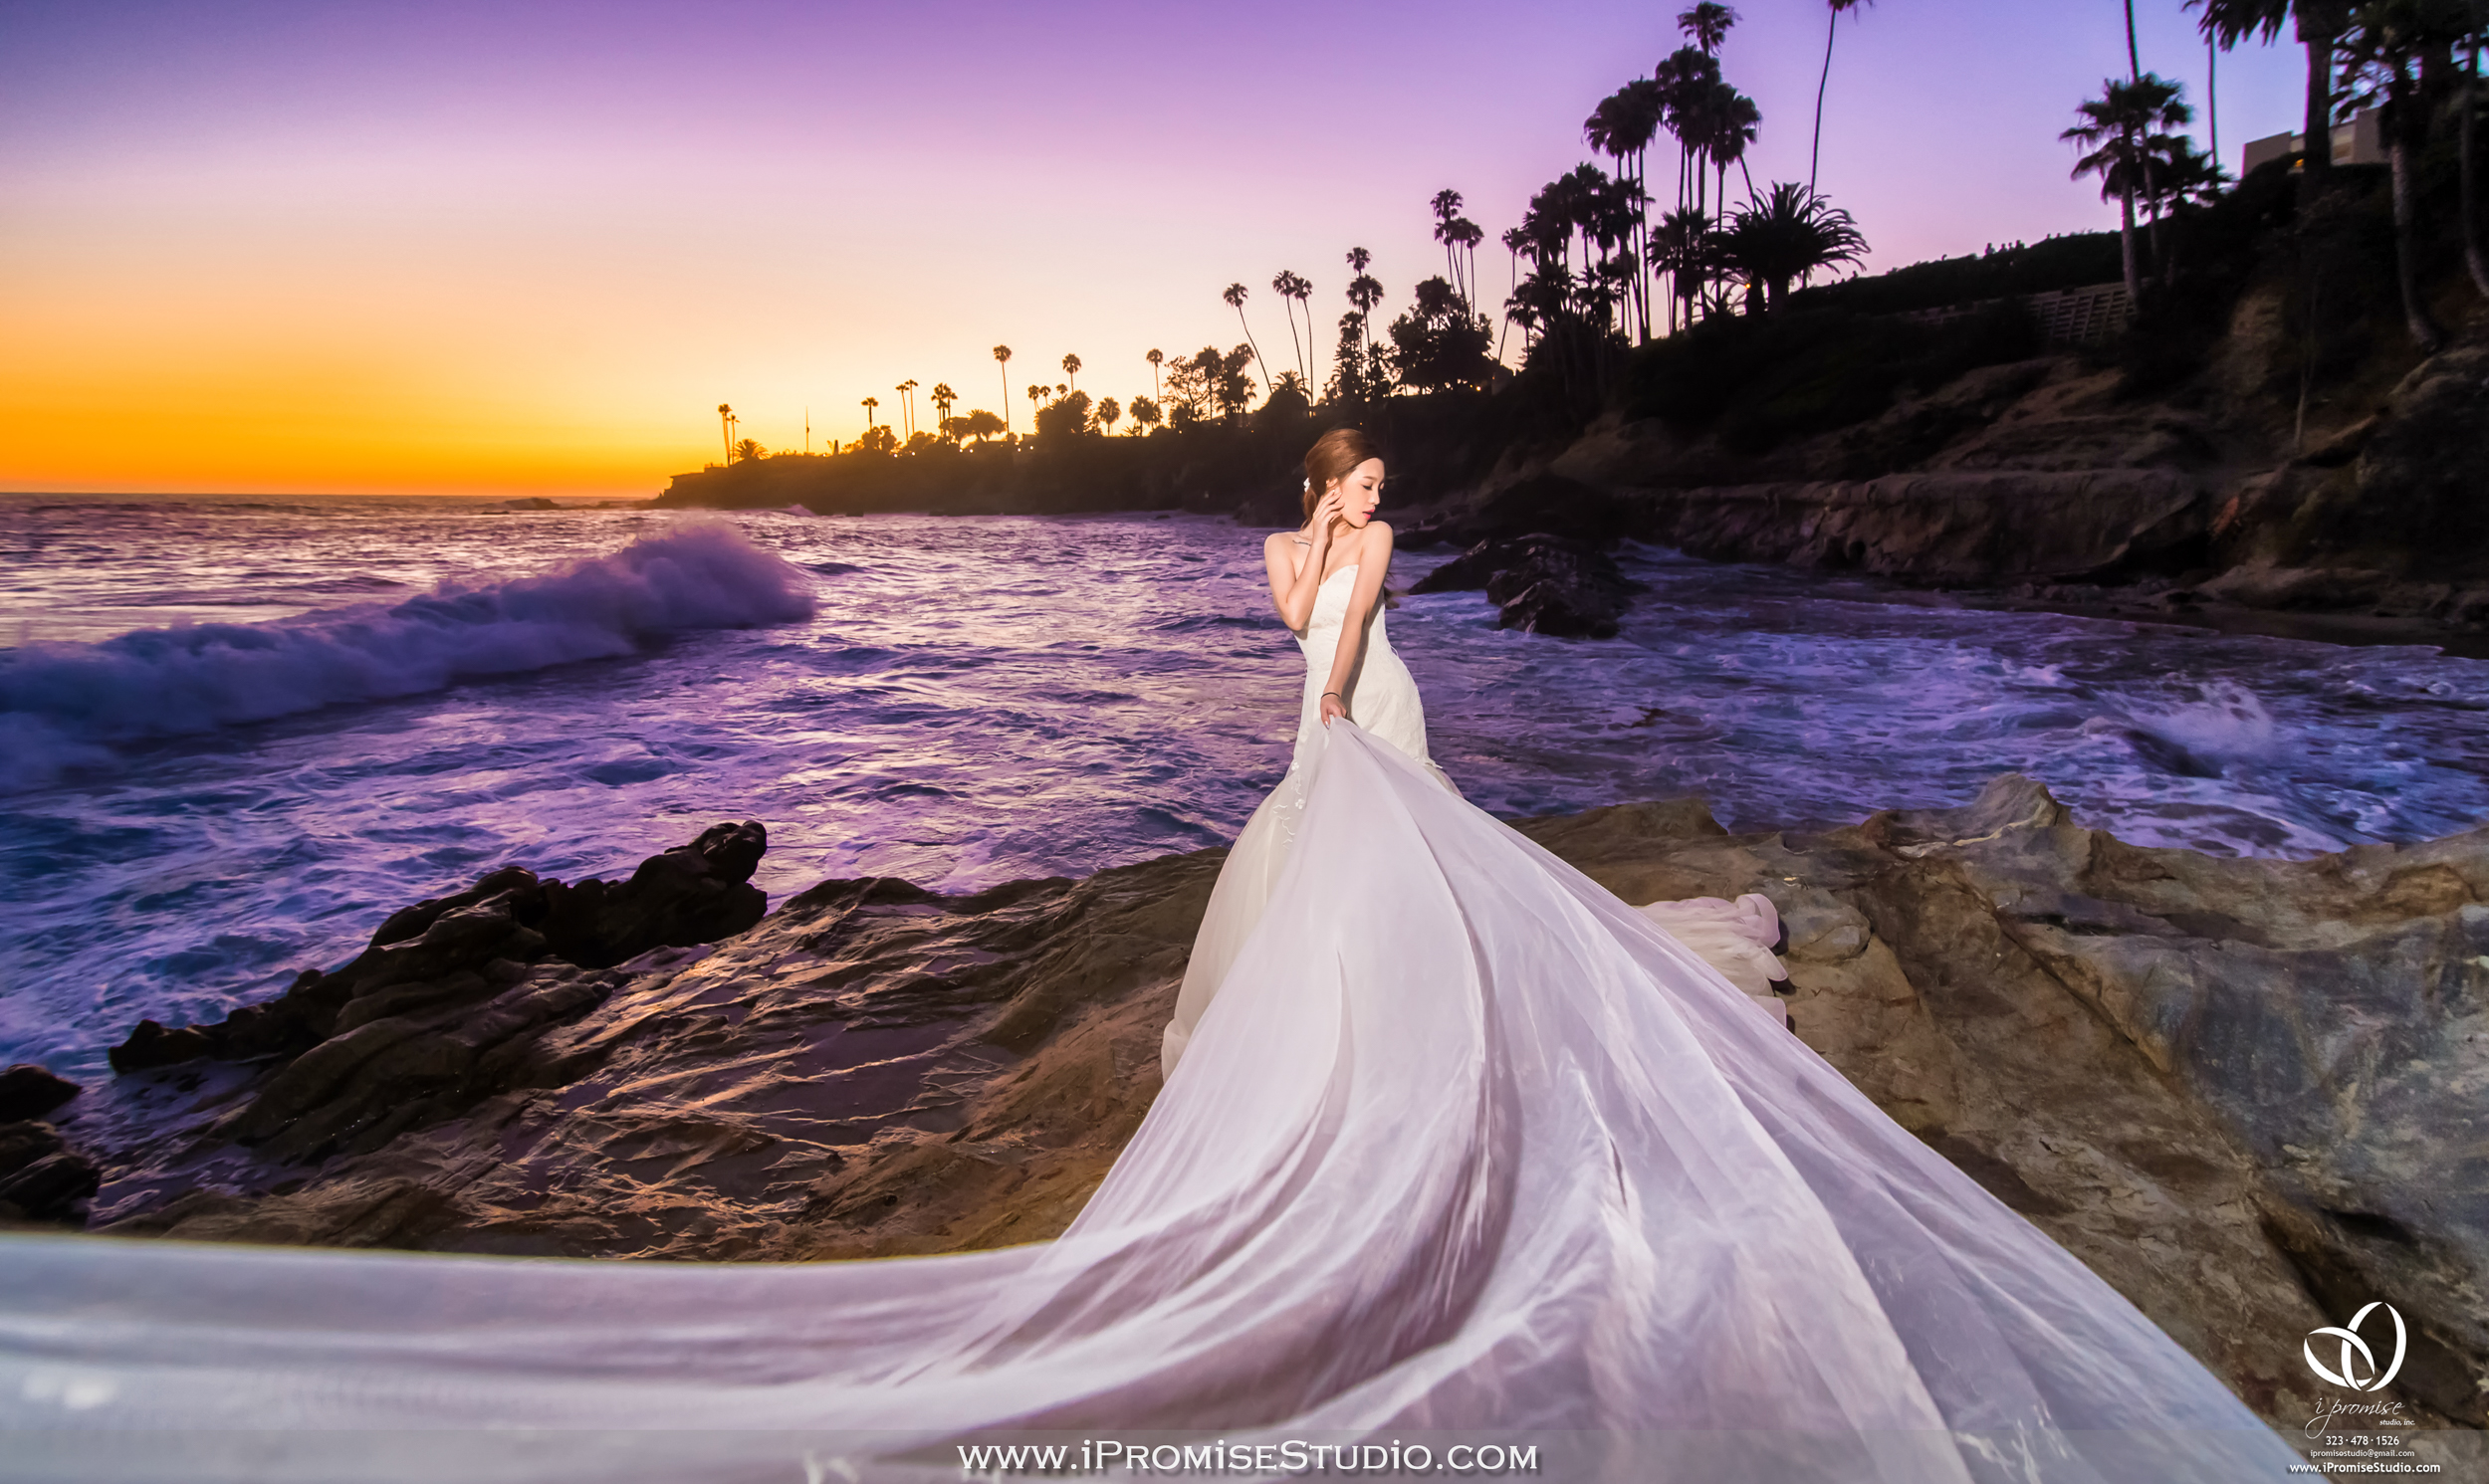 Laguna beach engagement wedding 02.JPG